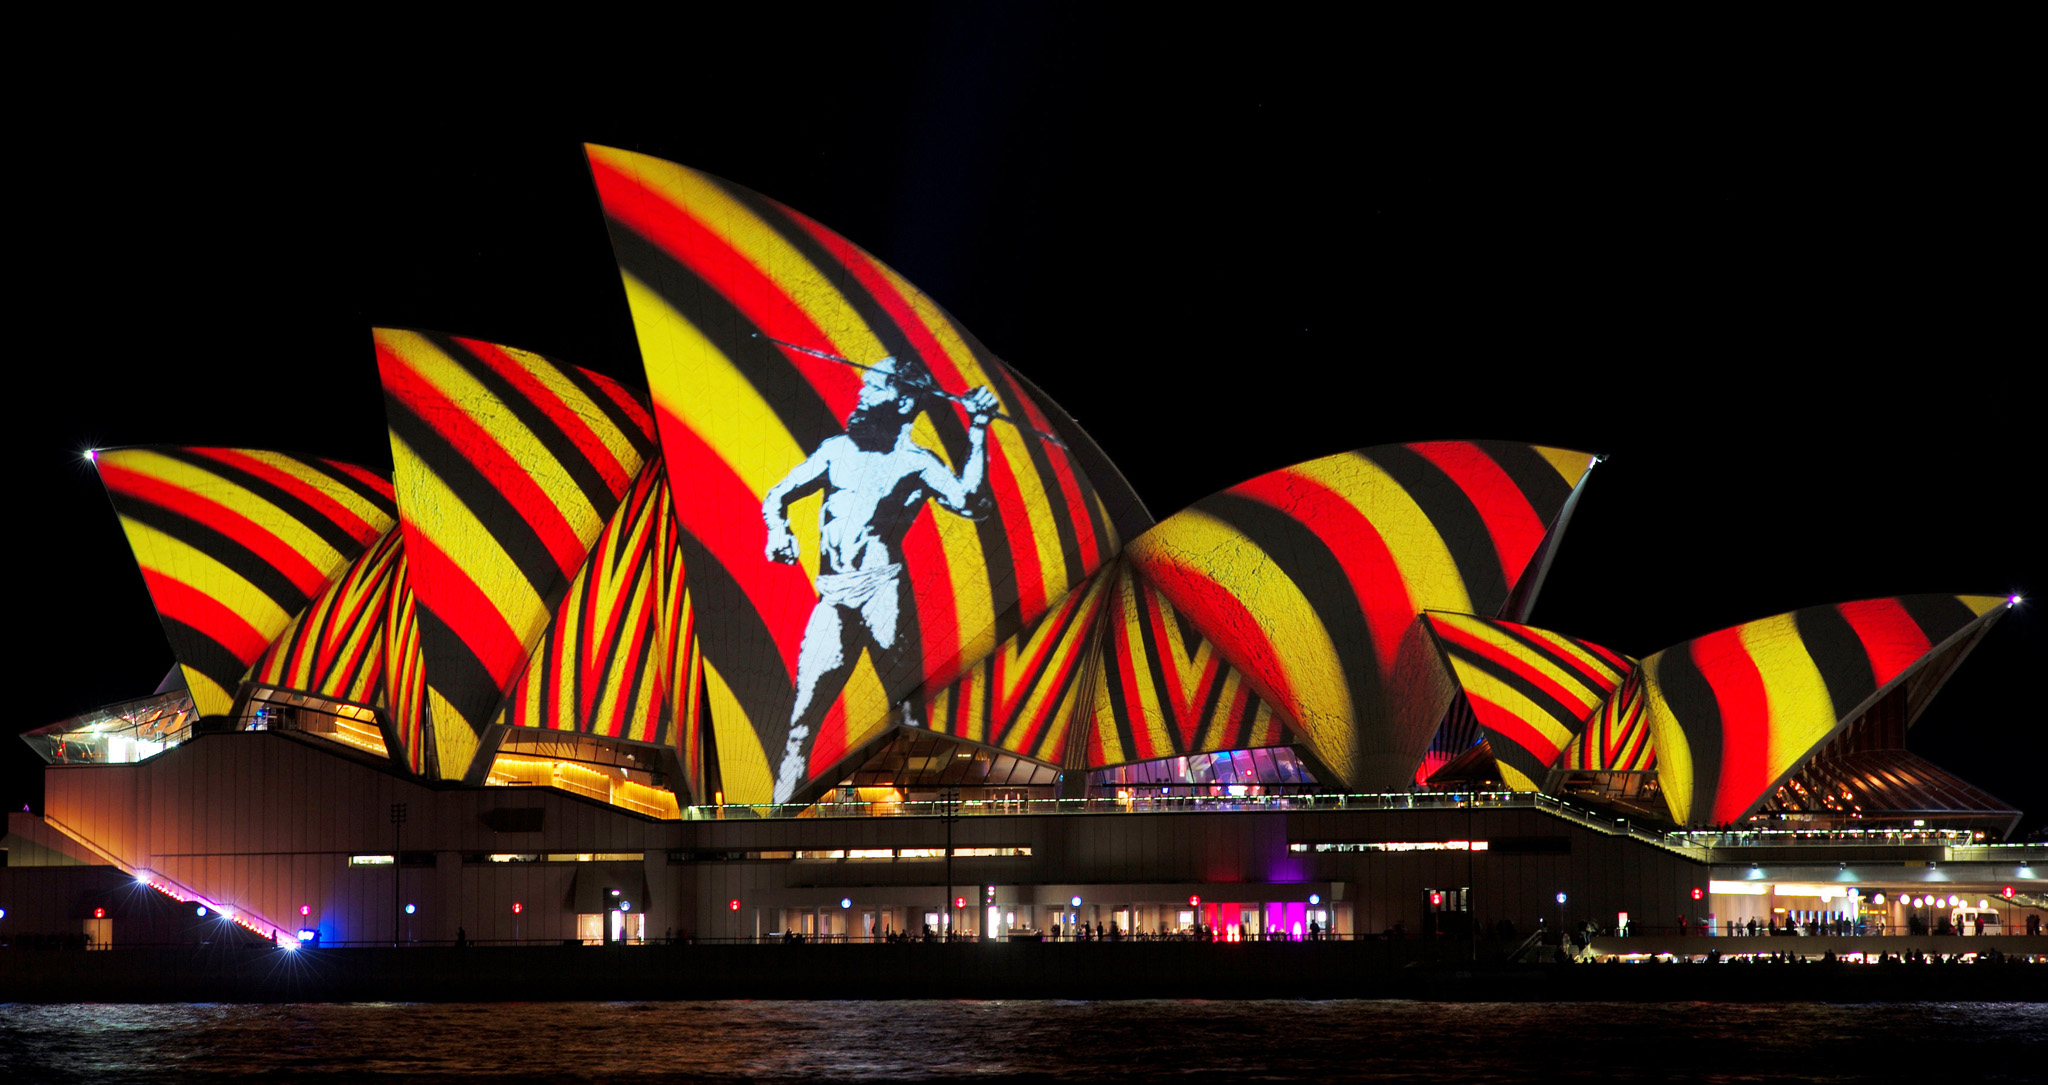 An image of an indigenous Australian man is projected onto the sails of the Sydney Opera House during the opening night of the annual Vivid Sydney light festival in Sydney, Australia, May 27, 2016. REUTERS/Jason Reed      TPX IMAGES OF THE DAY